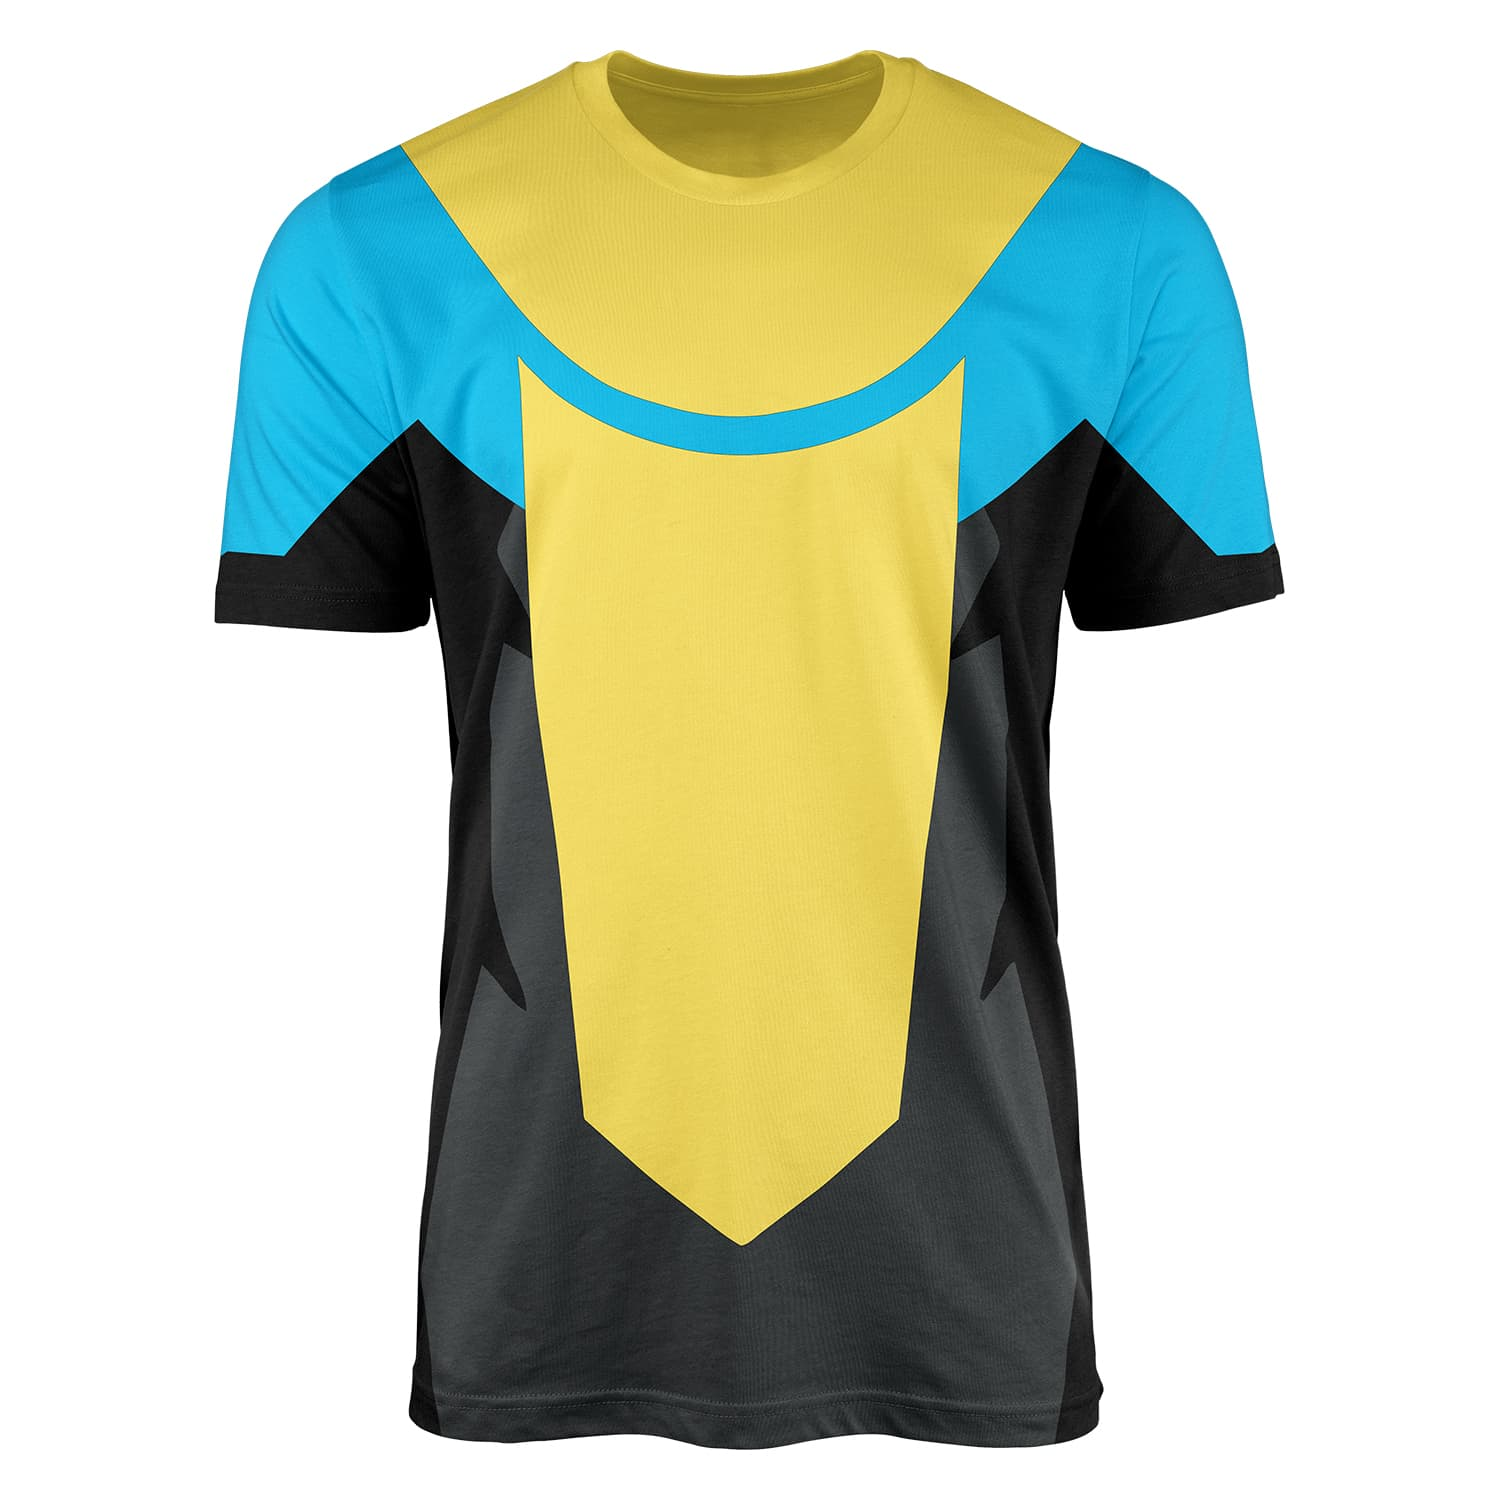 "Invincible ""Mark Superhero Costume"" - T-Shirt"